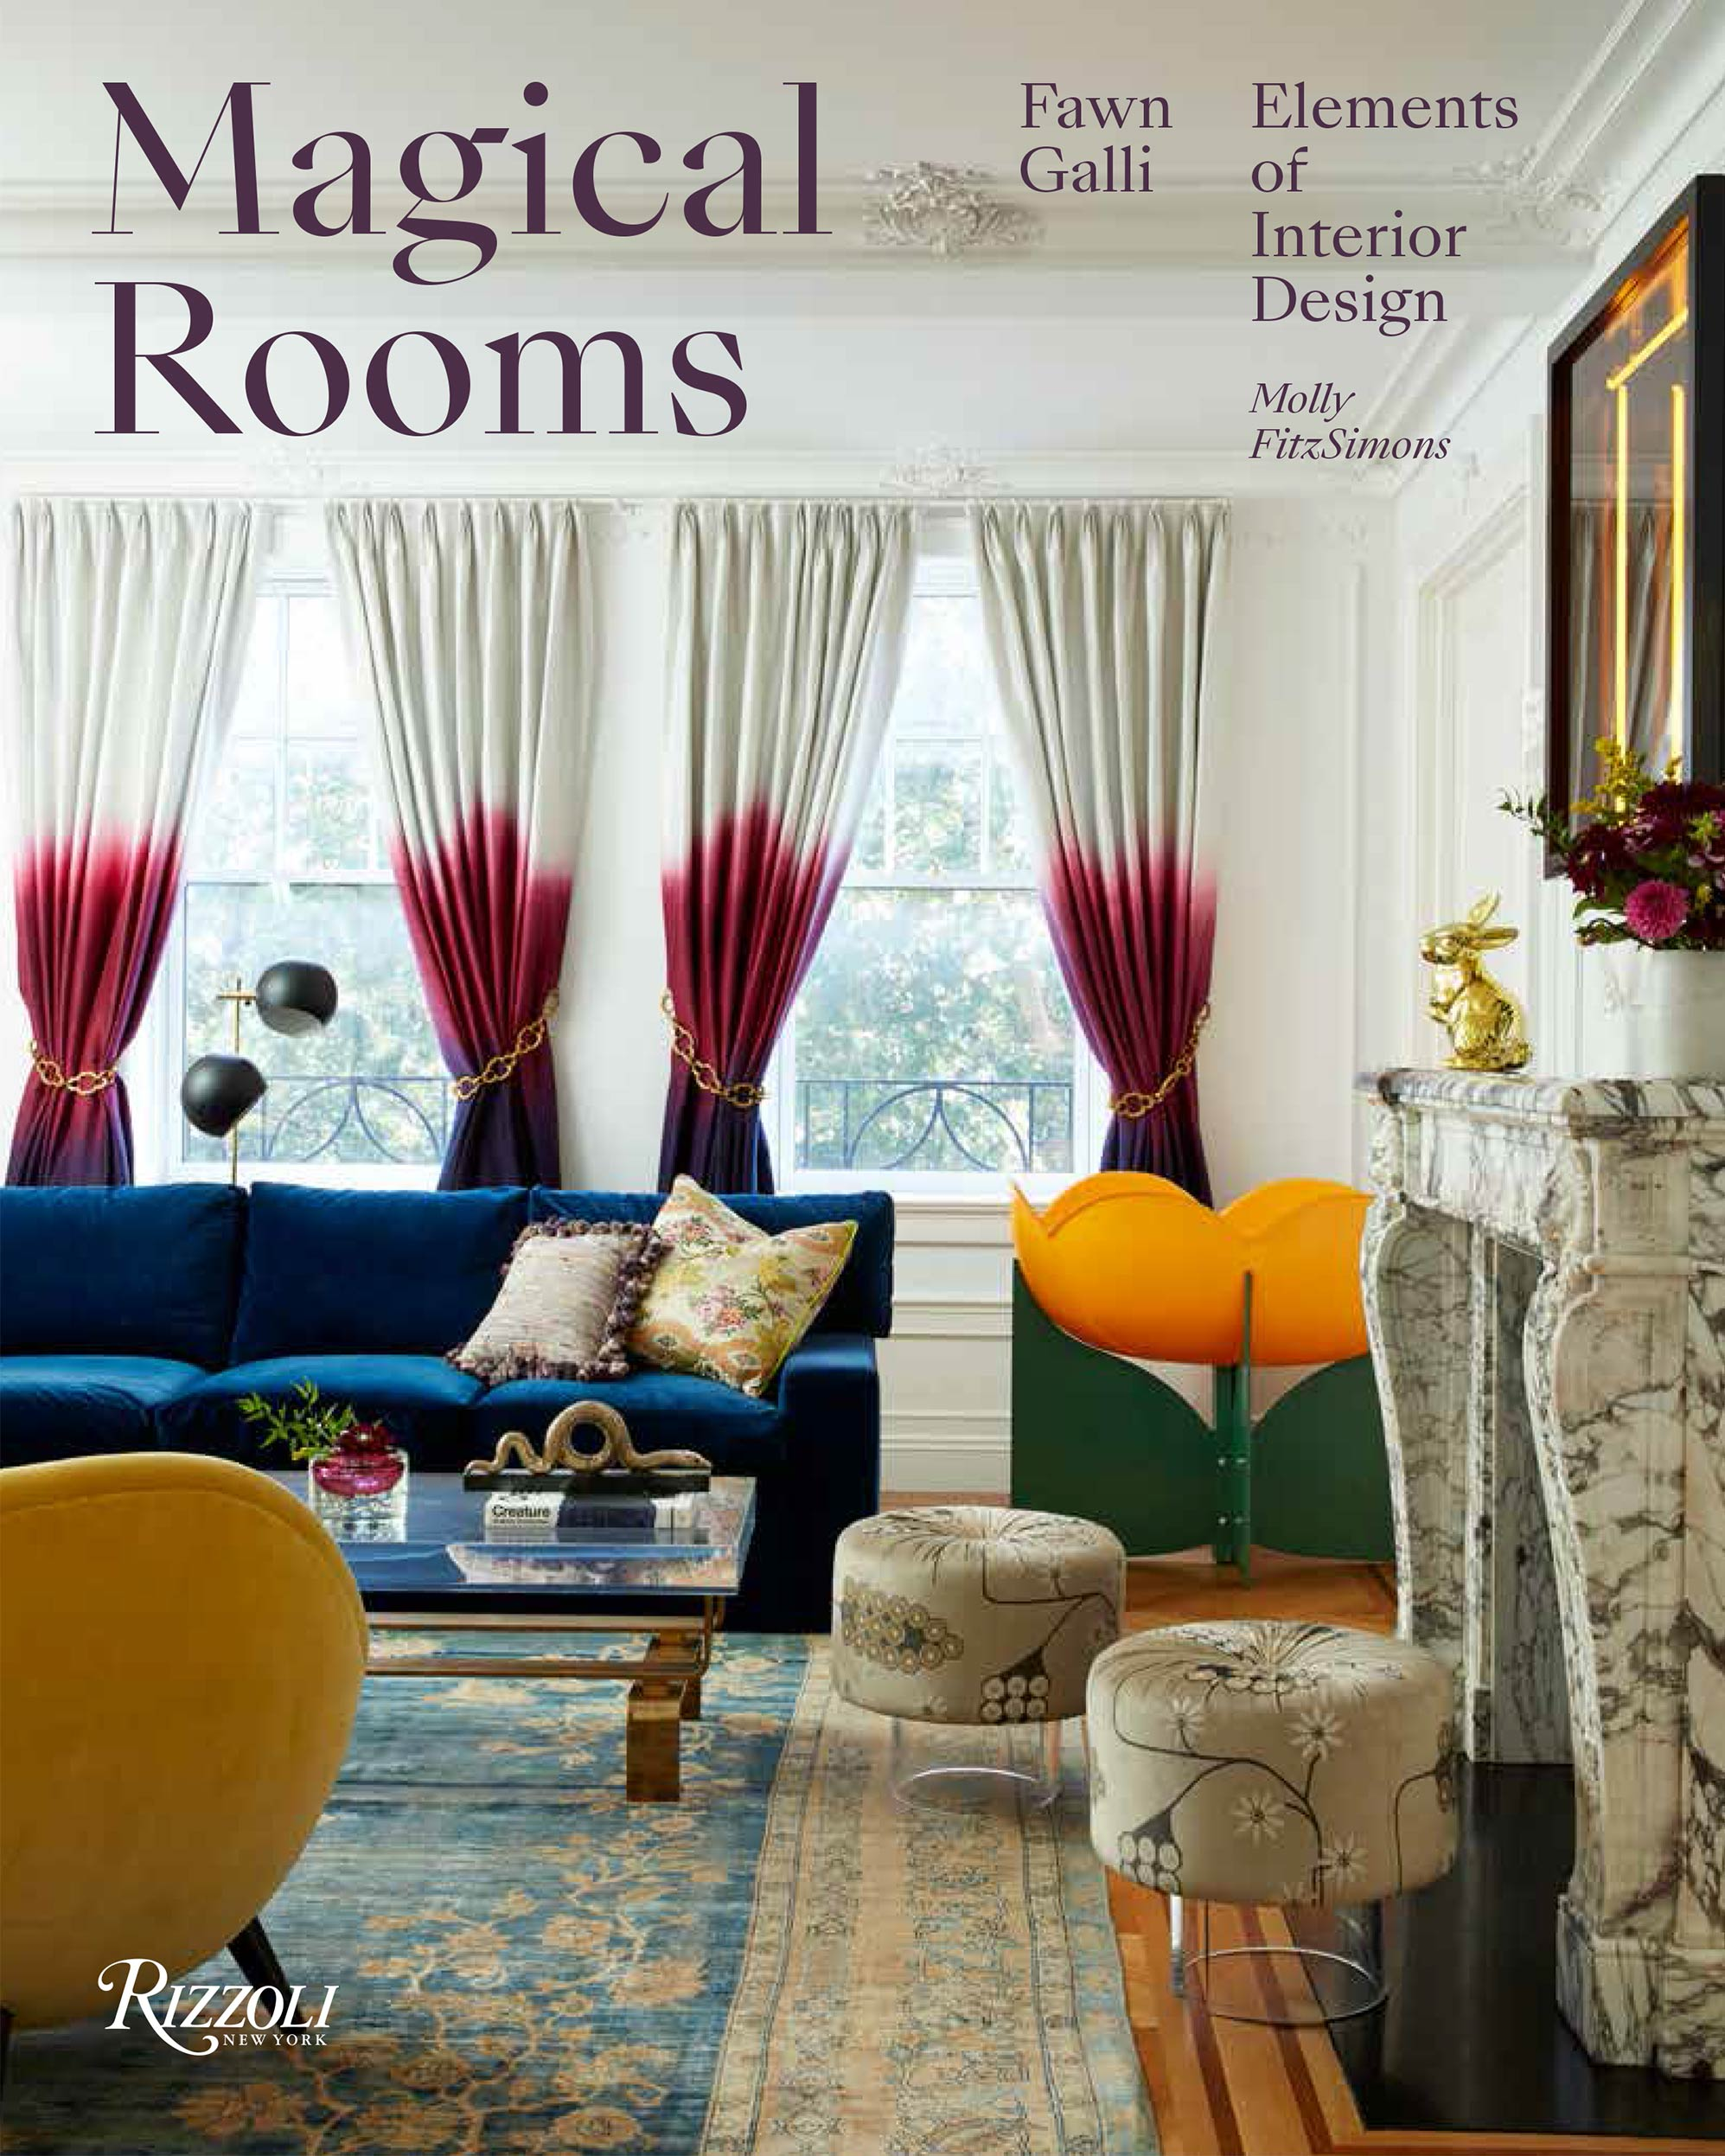 Magical_Rooms_Elements_Interior_Design_Molly_FitzSimons_Fawn_Galli.jpg